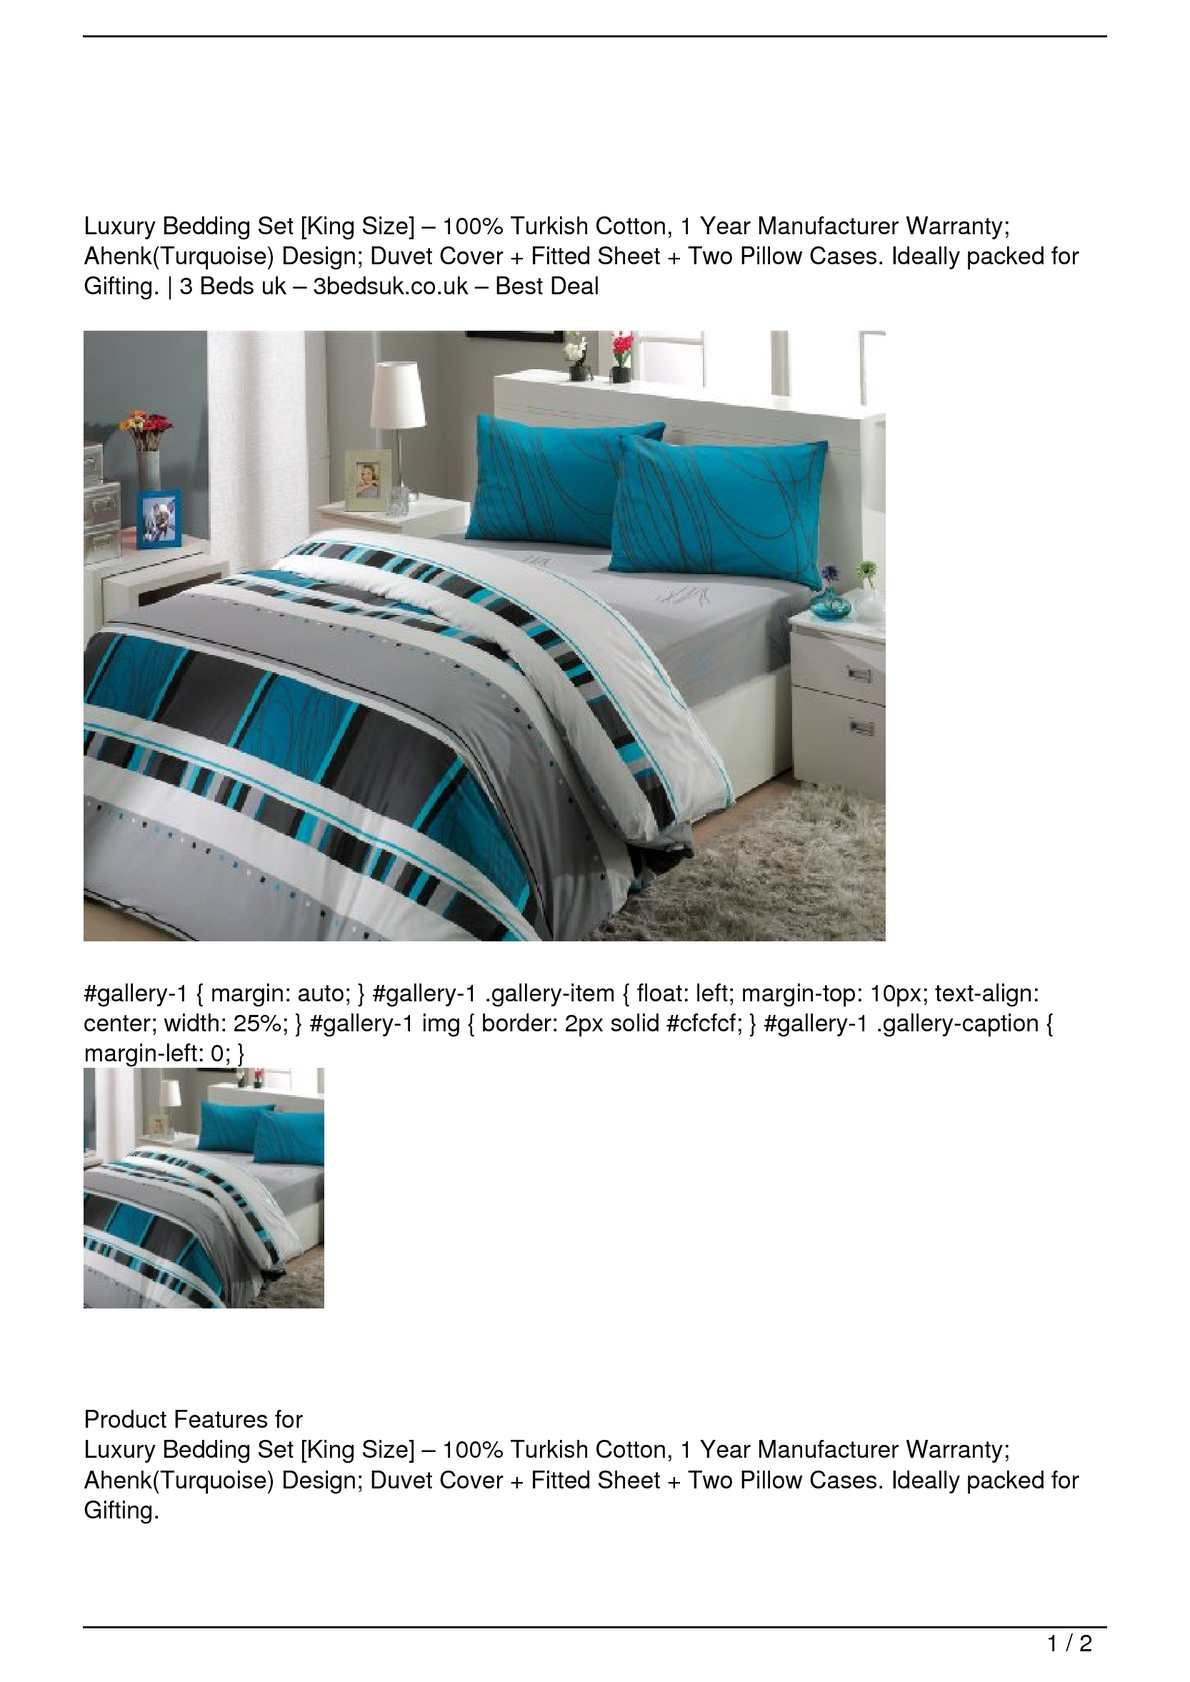 Picture of: Calameo Luxury Bedding Set King Size 8211 100 Turkish Cotton 1 Year Manufacturer Warranty Ahenk Turquoise Design Duvet Cover Fitted Sheet Two Pillow Cases Ideally Packed For Gifting On Sale